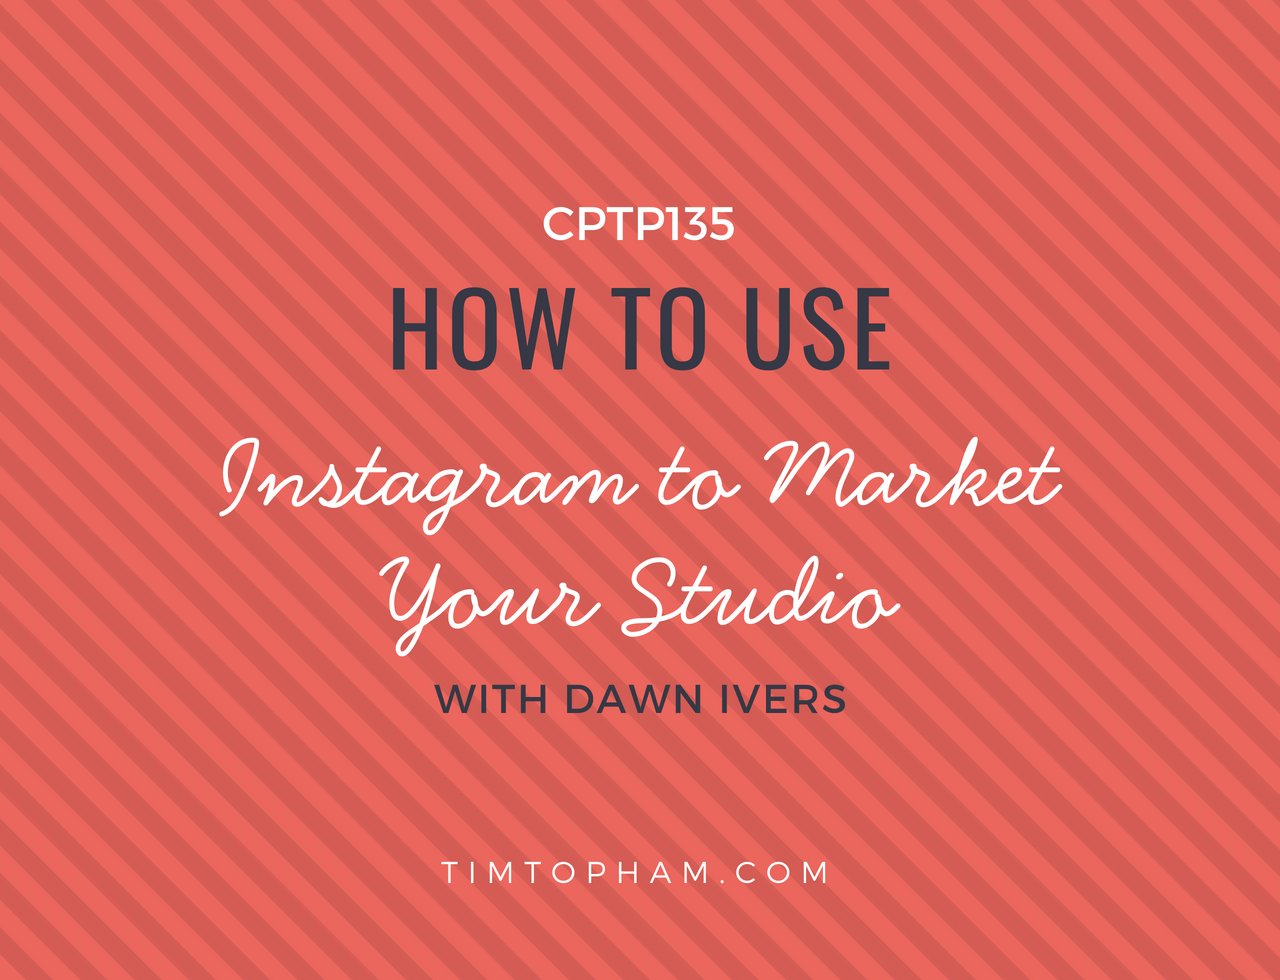 CPTP135_-How-to-use-Instagram-to-Market-Your-Studio-with-Dawn-Ivers